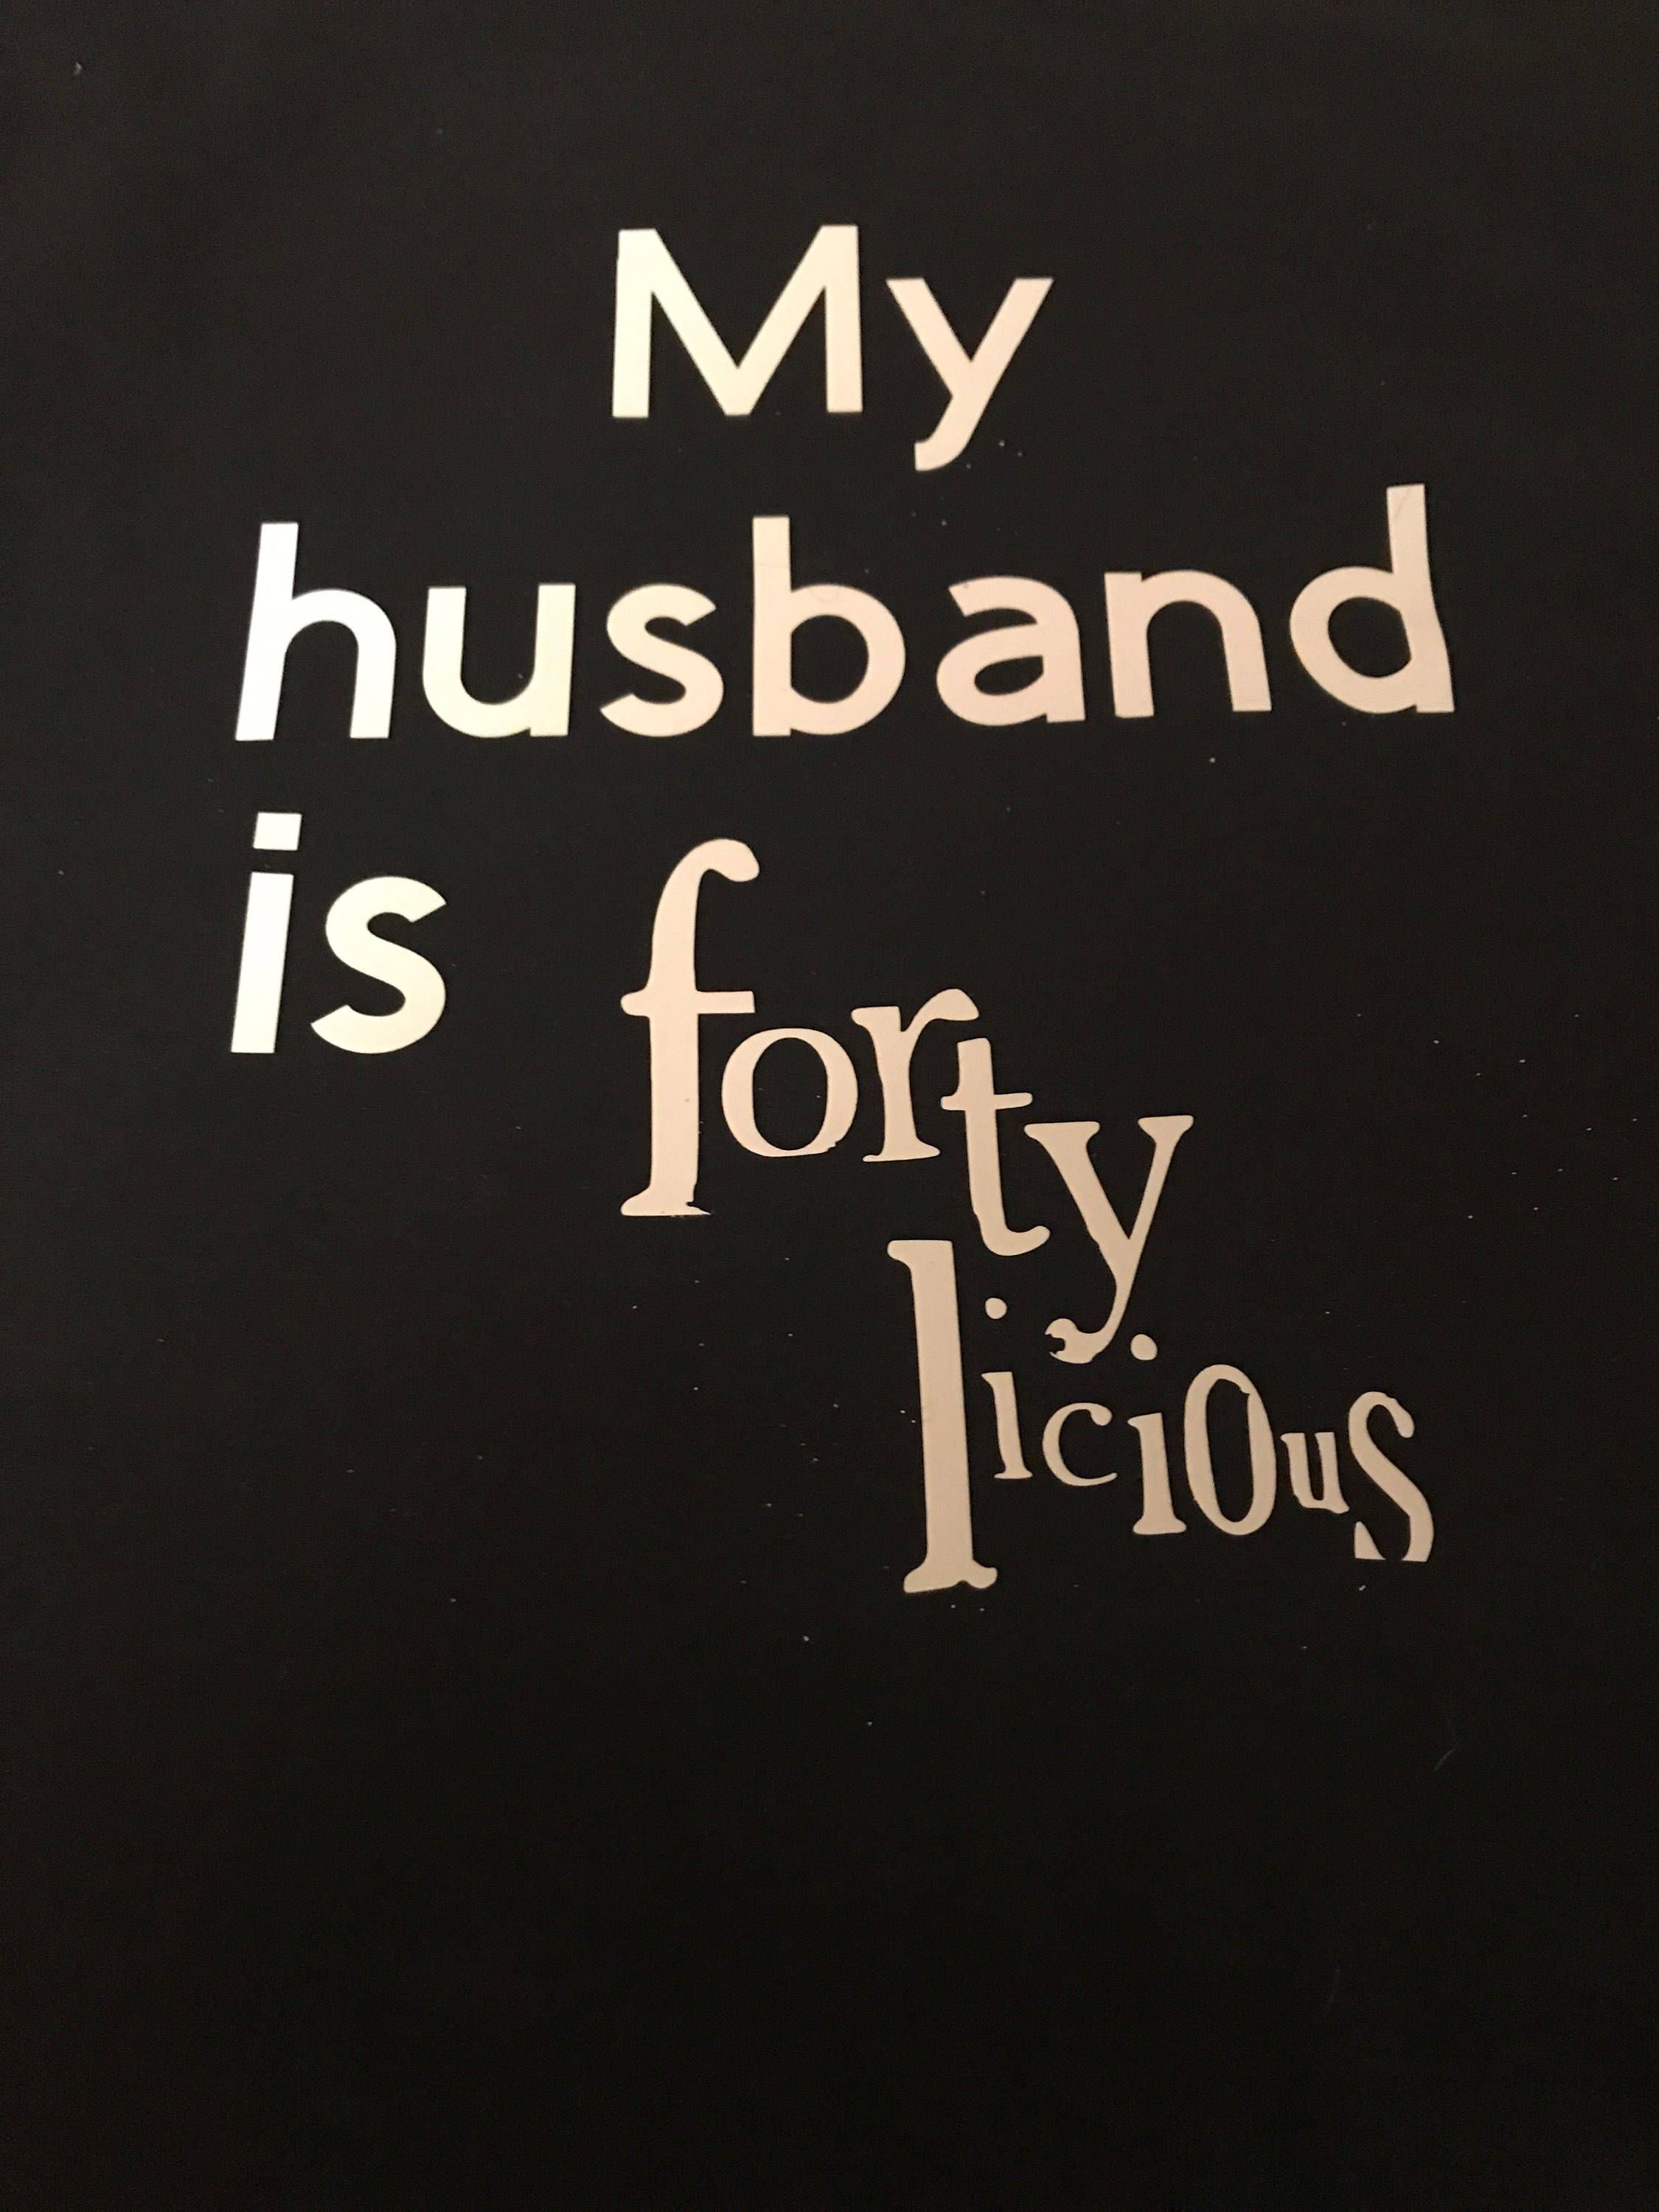 My Husband Is Forty Licious Tshirt Husband Birthday Shirt Funny